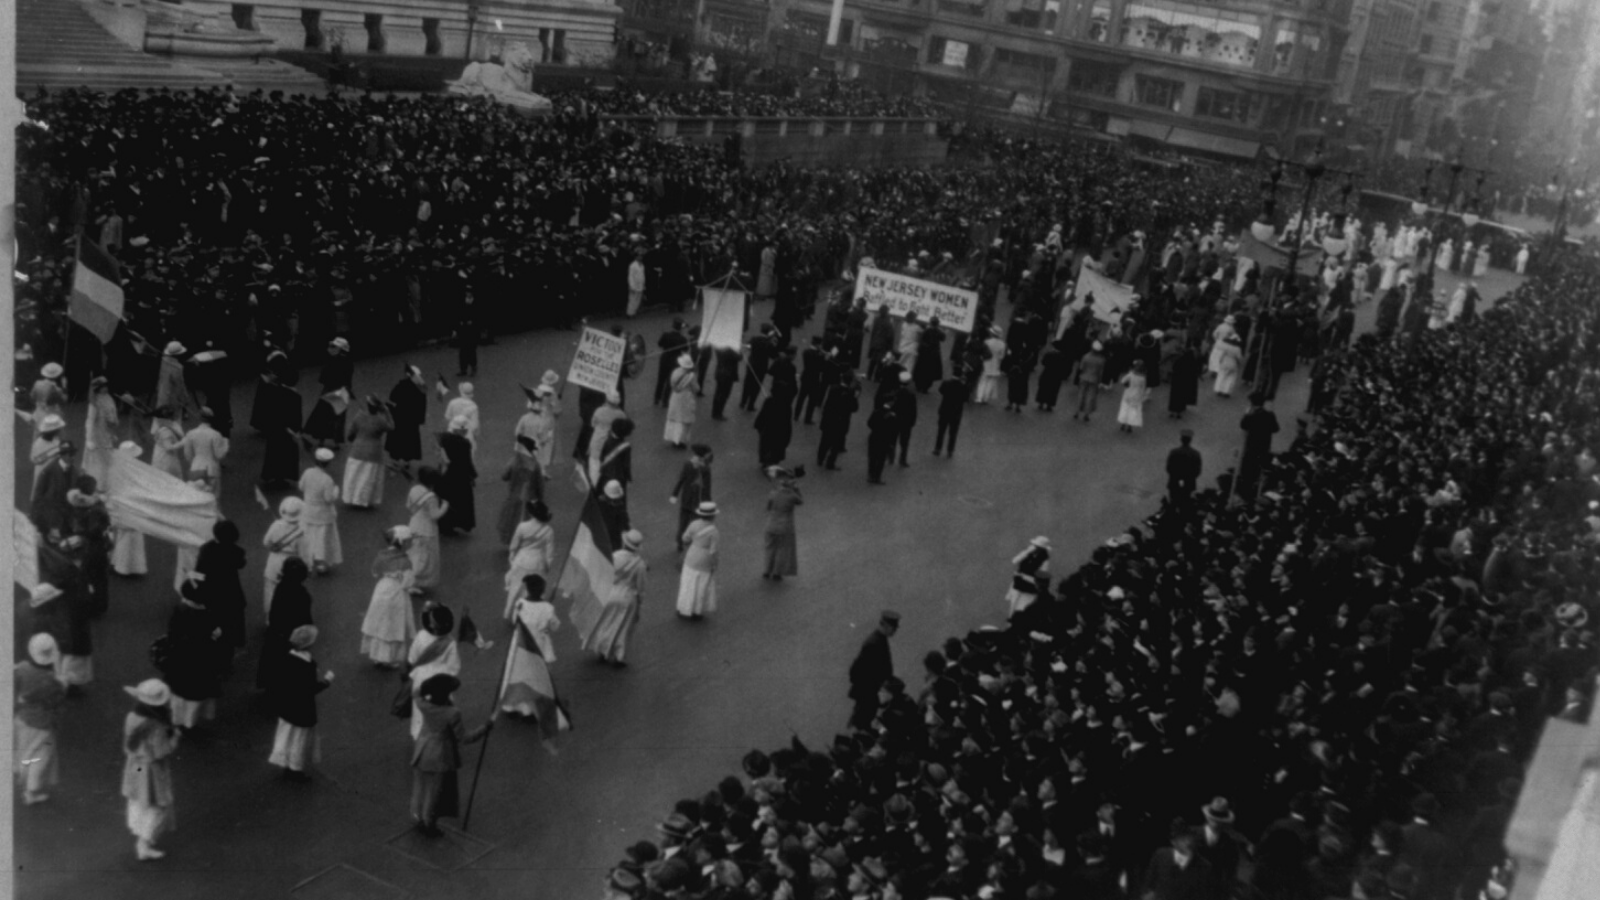 Woman Suffrage in Black and White